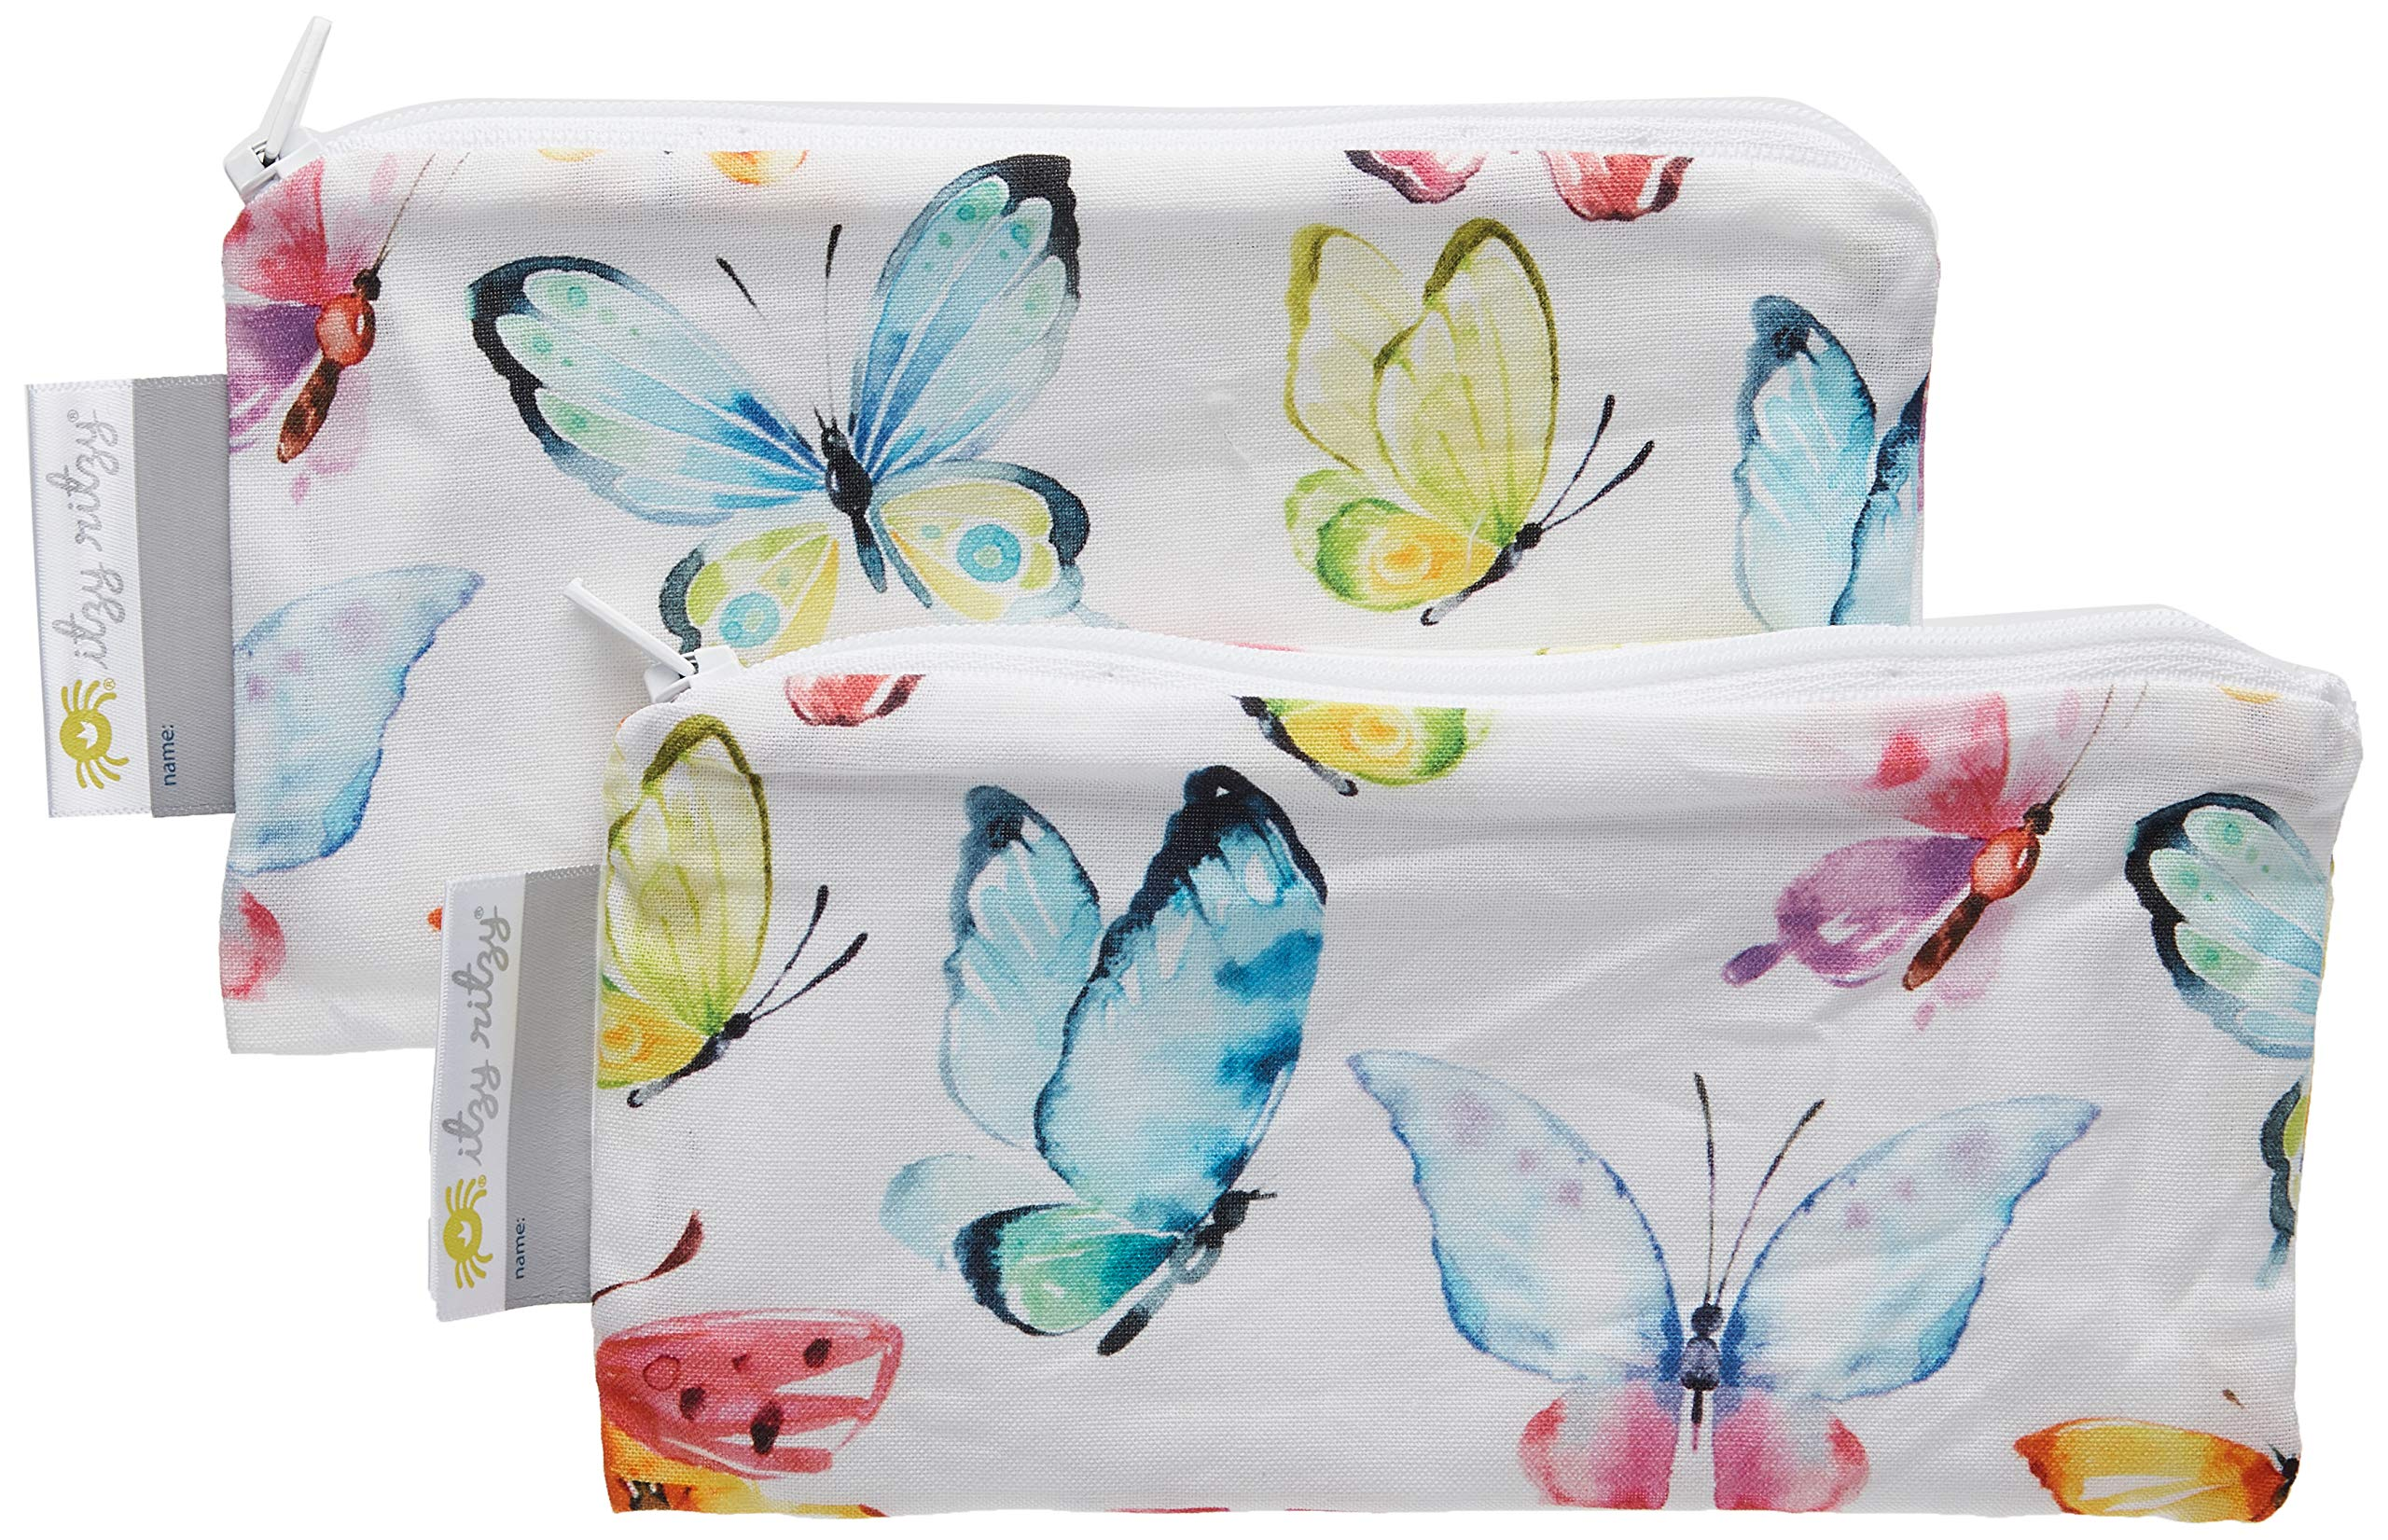 """Itzy Ritzy Reusable Mini Snack Bags – 2-Pack of 3.5"""" x 7"""" BPA-Free Snack Bags are Food Safe & Washable for Storing Snacks, Pacifiers and Makeup in a Diaper Bag, Purse or Travel Bag, Butterflies"""